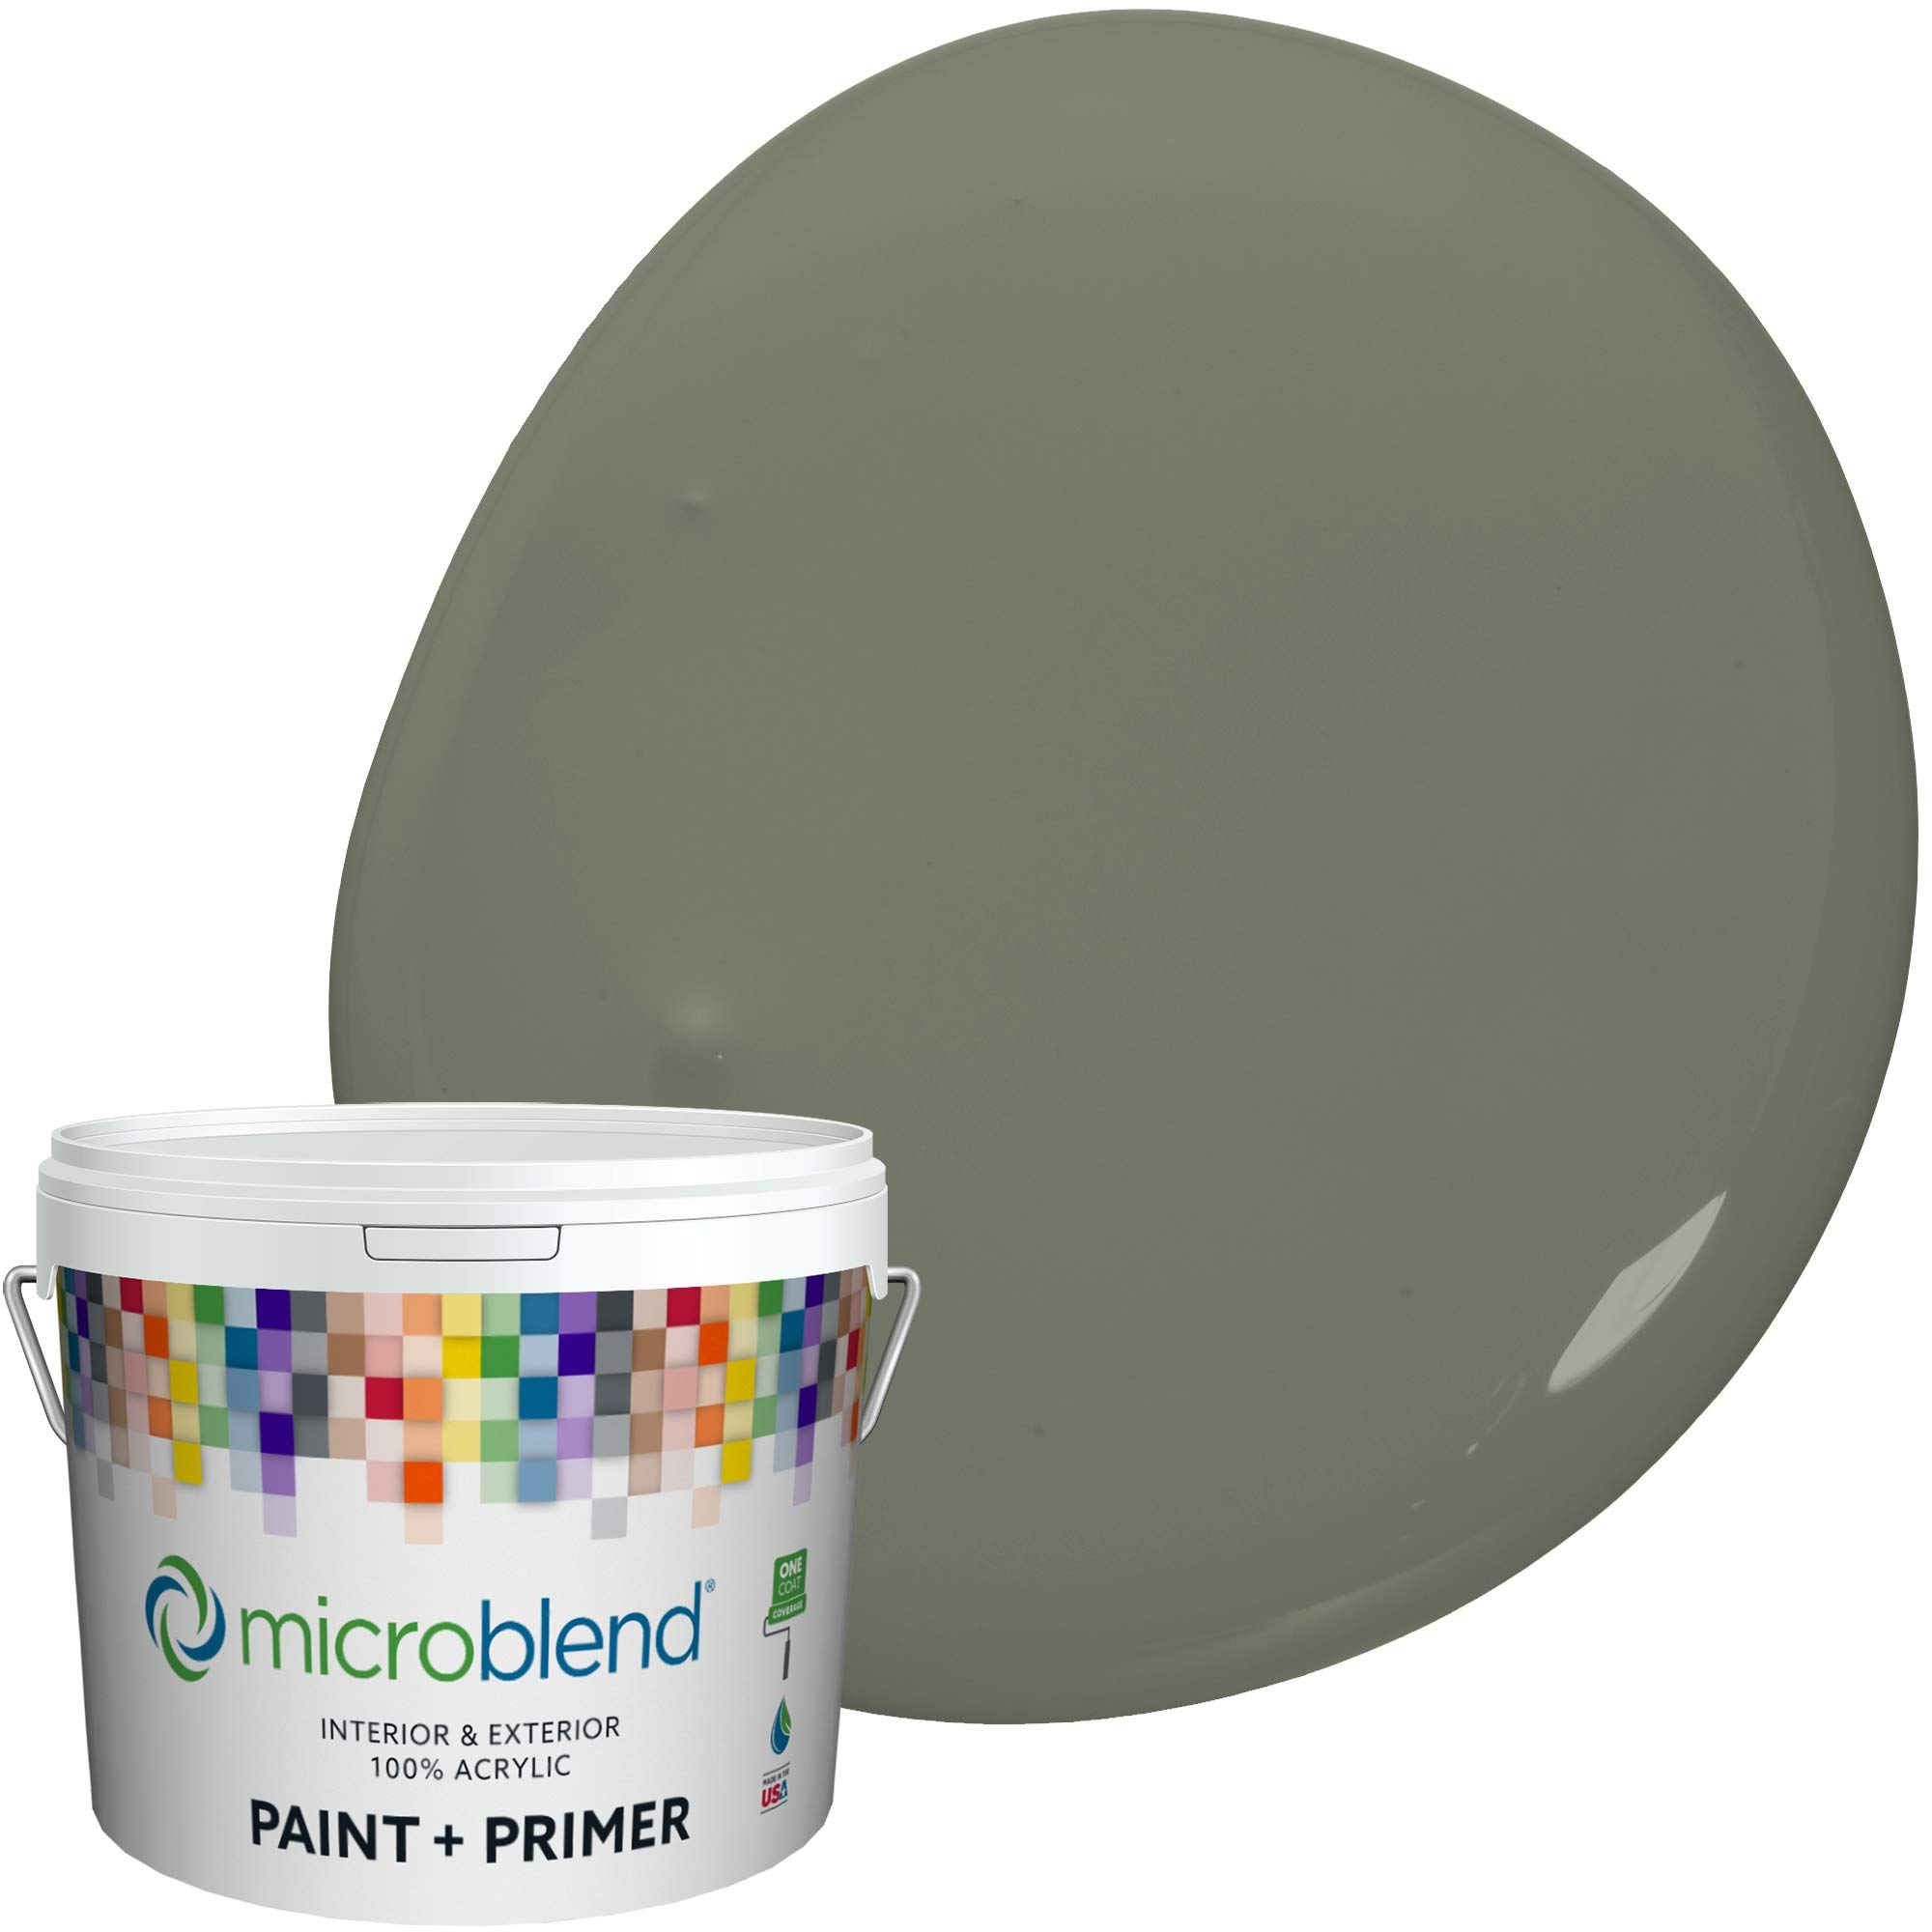 MicroBlend Interior Paint + Primer, Rocky Mountain, Flat Sheen, 1 Gallon, Custom Made, Premium Quality One Coat Hide & Washable Paint (73213-2-M1522B5(C))